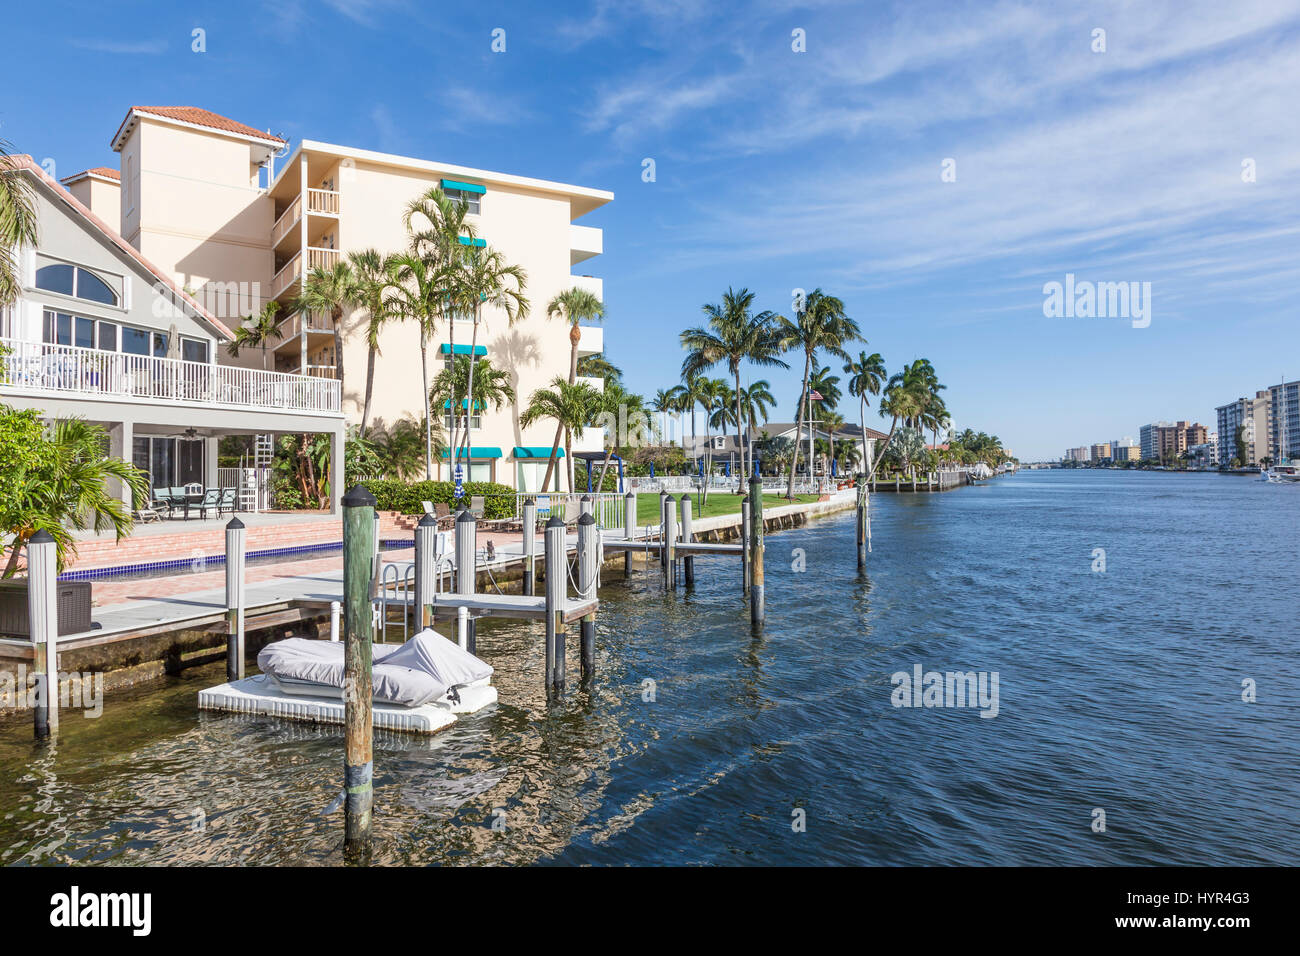 Waterfront buildings in Pompano Beach, Florida, United States - Stock Image